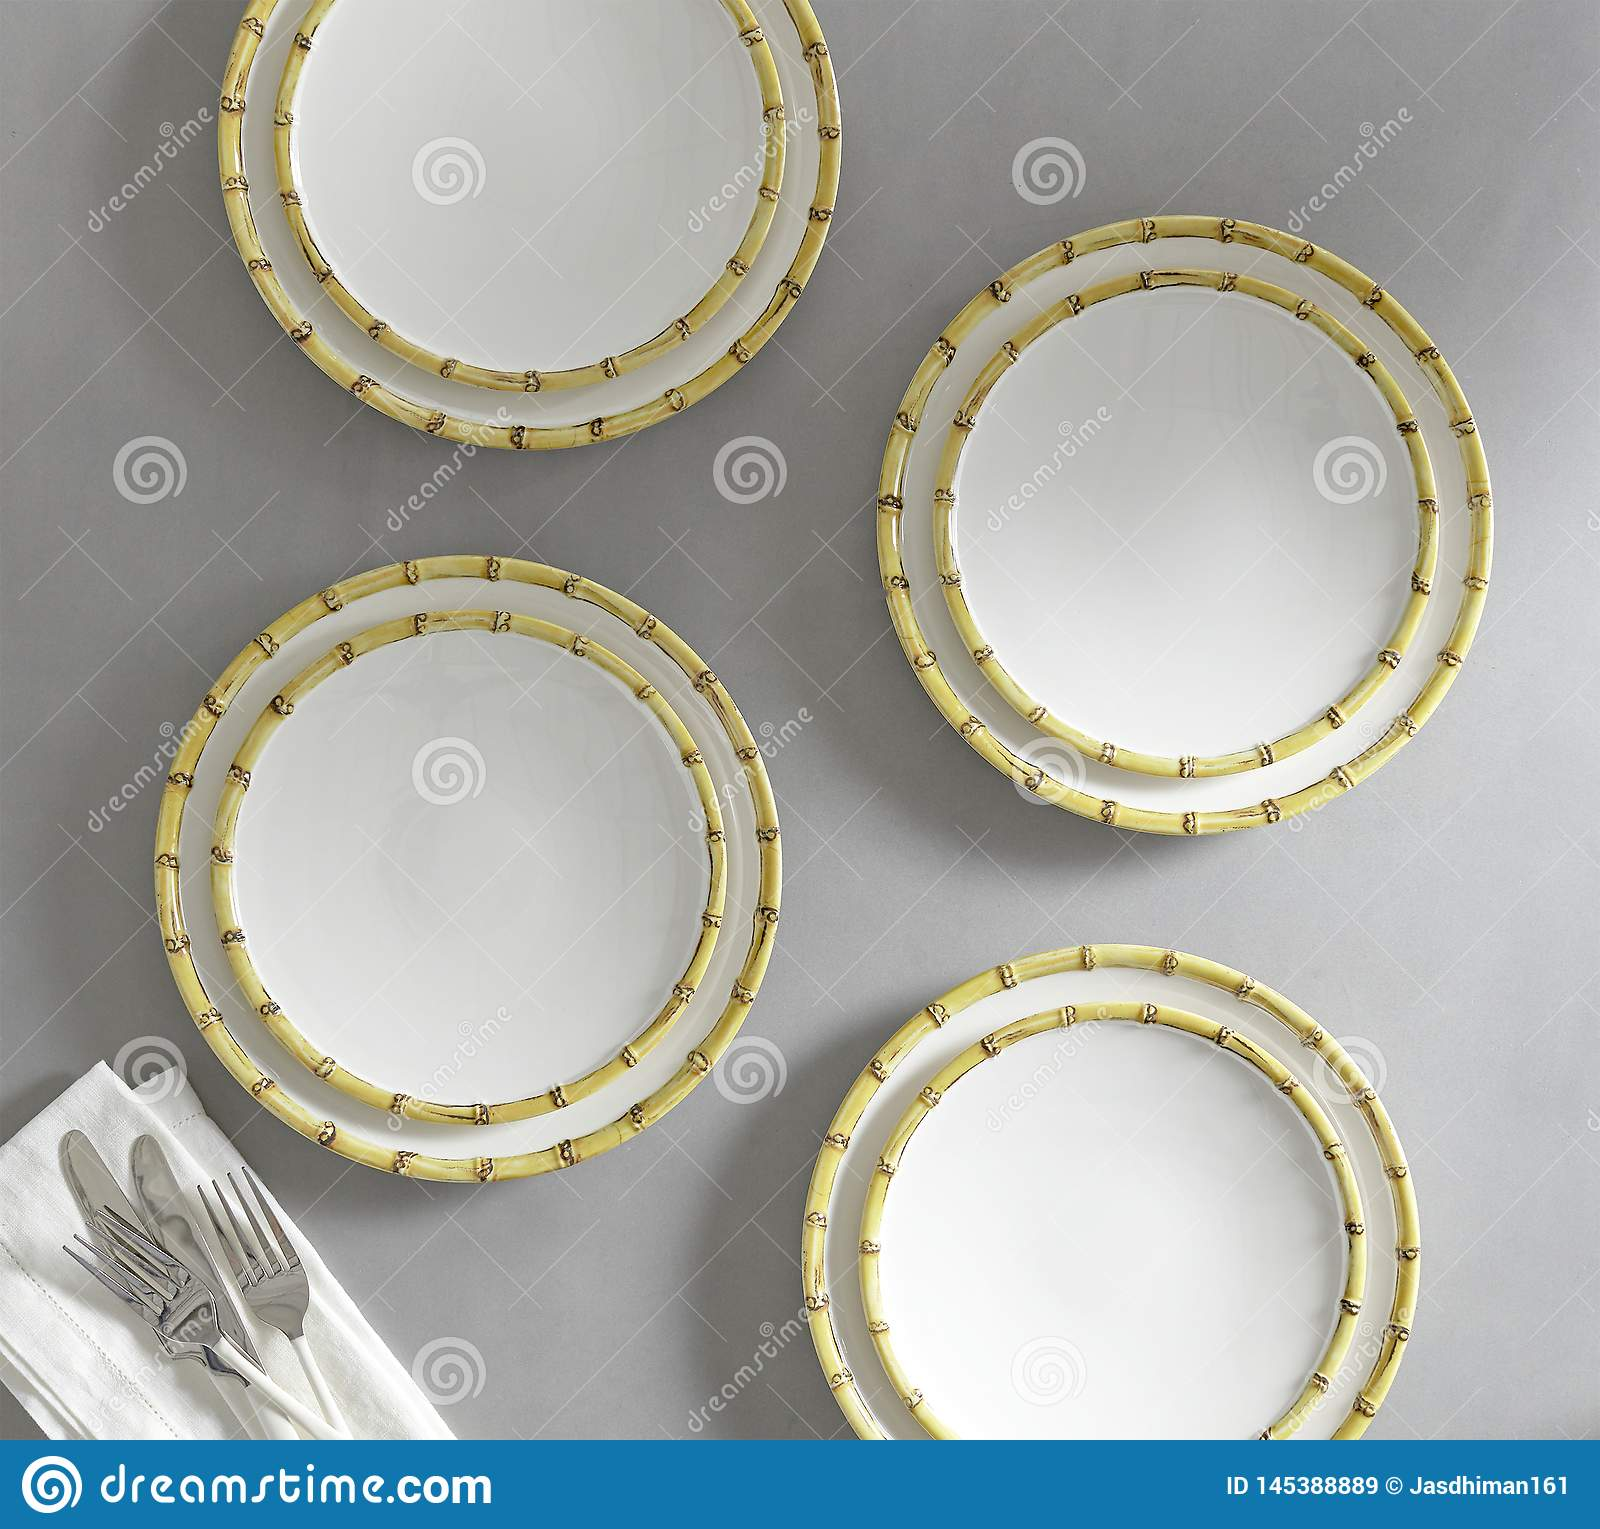 Set of 4 matching decorative plates for interior design - yellow waves.